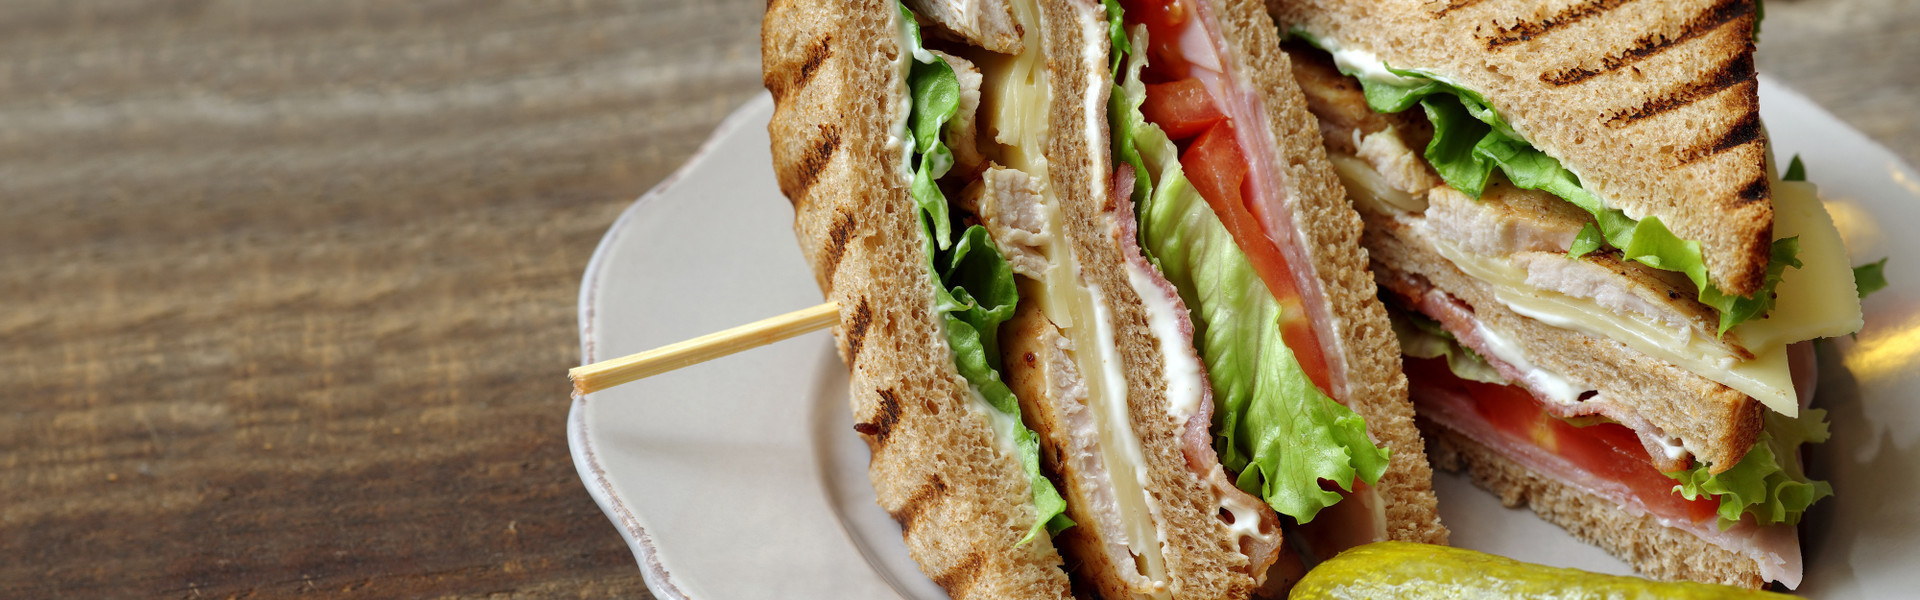 Tasty sandwich from room service at Westgate Lakes | Westgate Lakes Resort & Spa